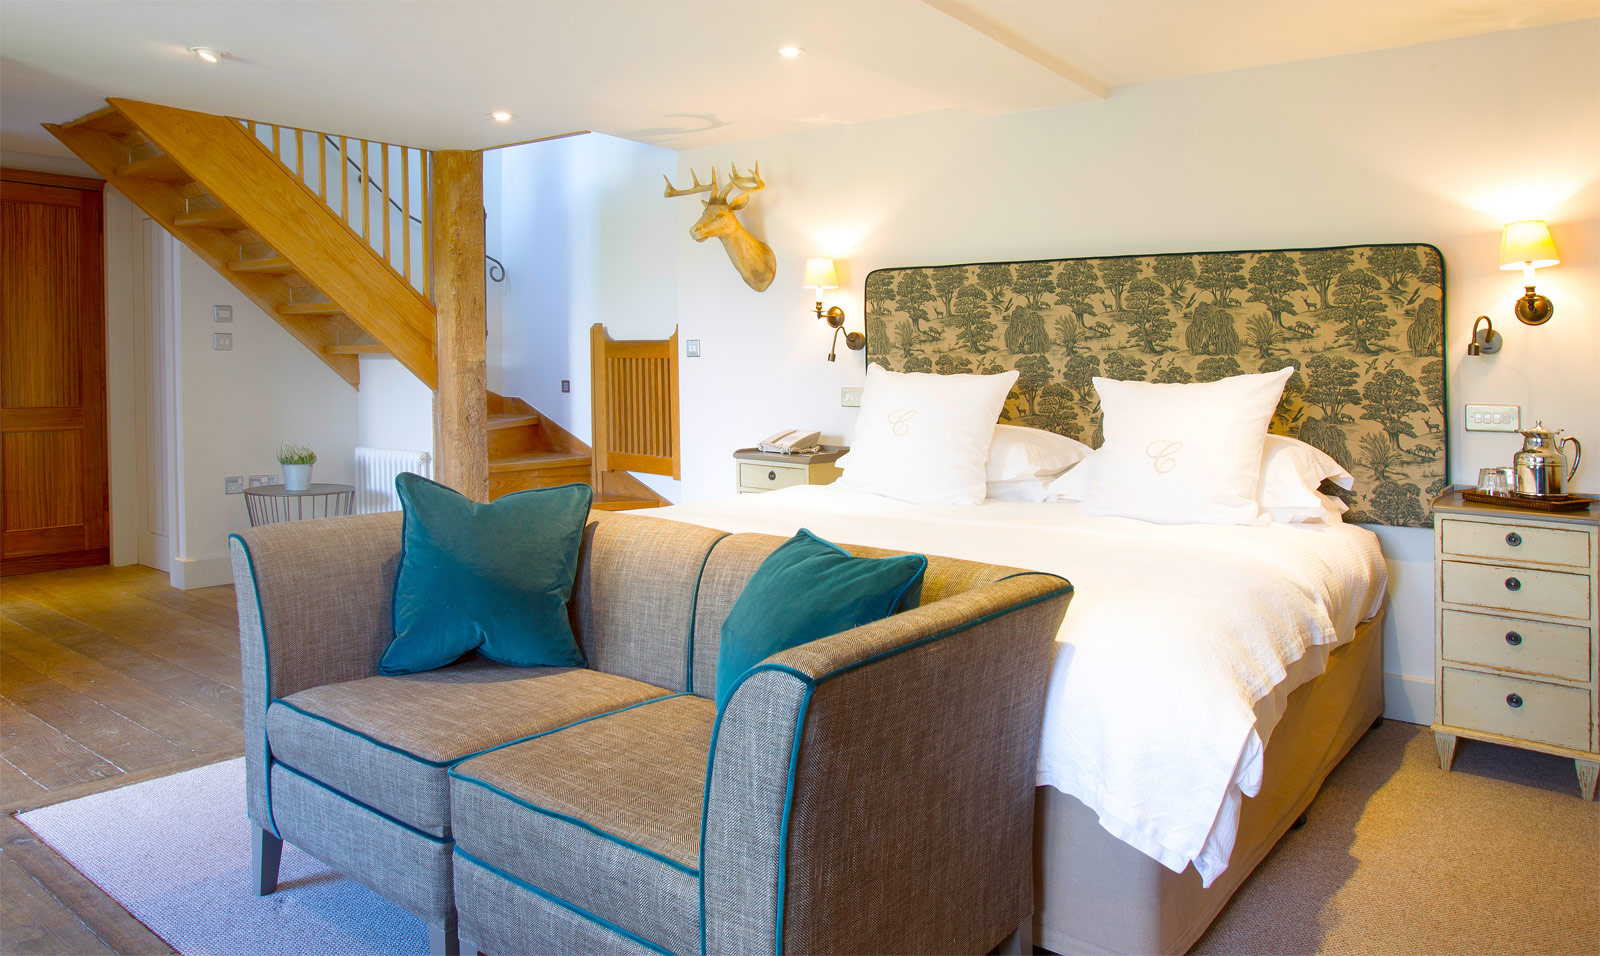 Calcot In the Cotswolds - A Lovely Rural Escape From The Daily Grind 3